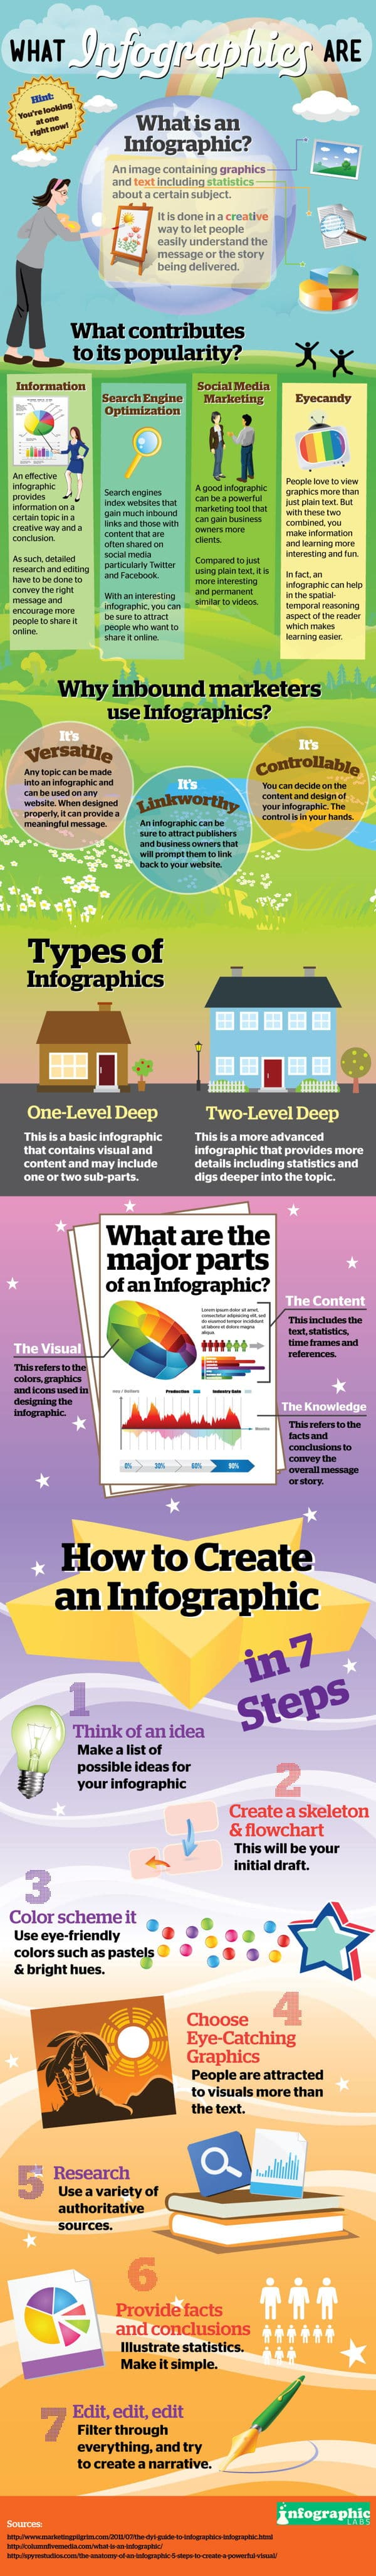 Wat is een infographic?